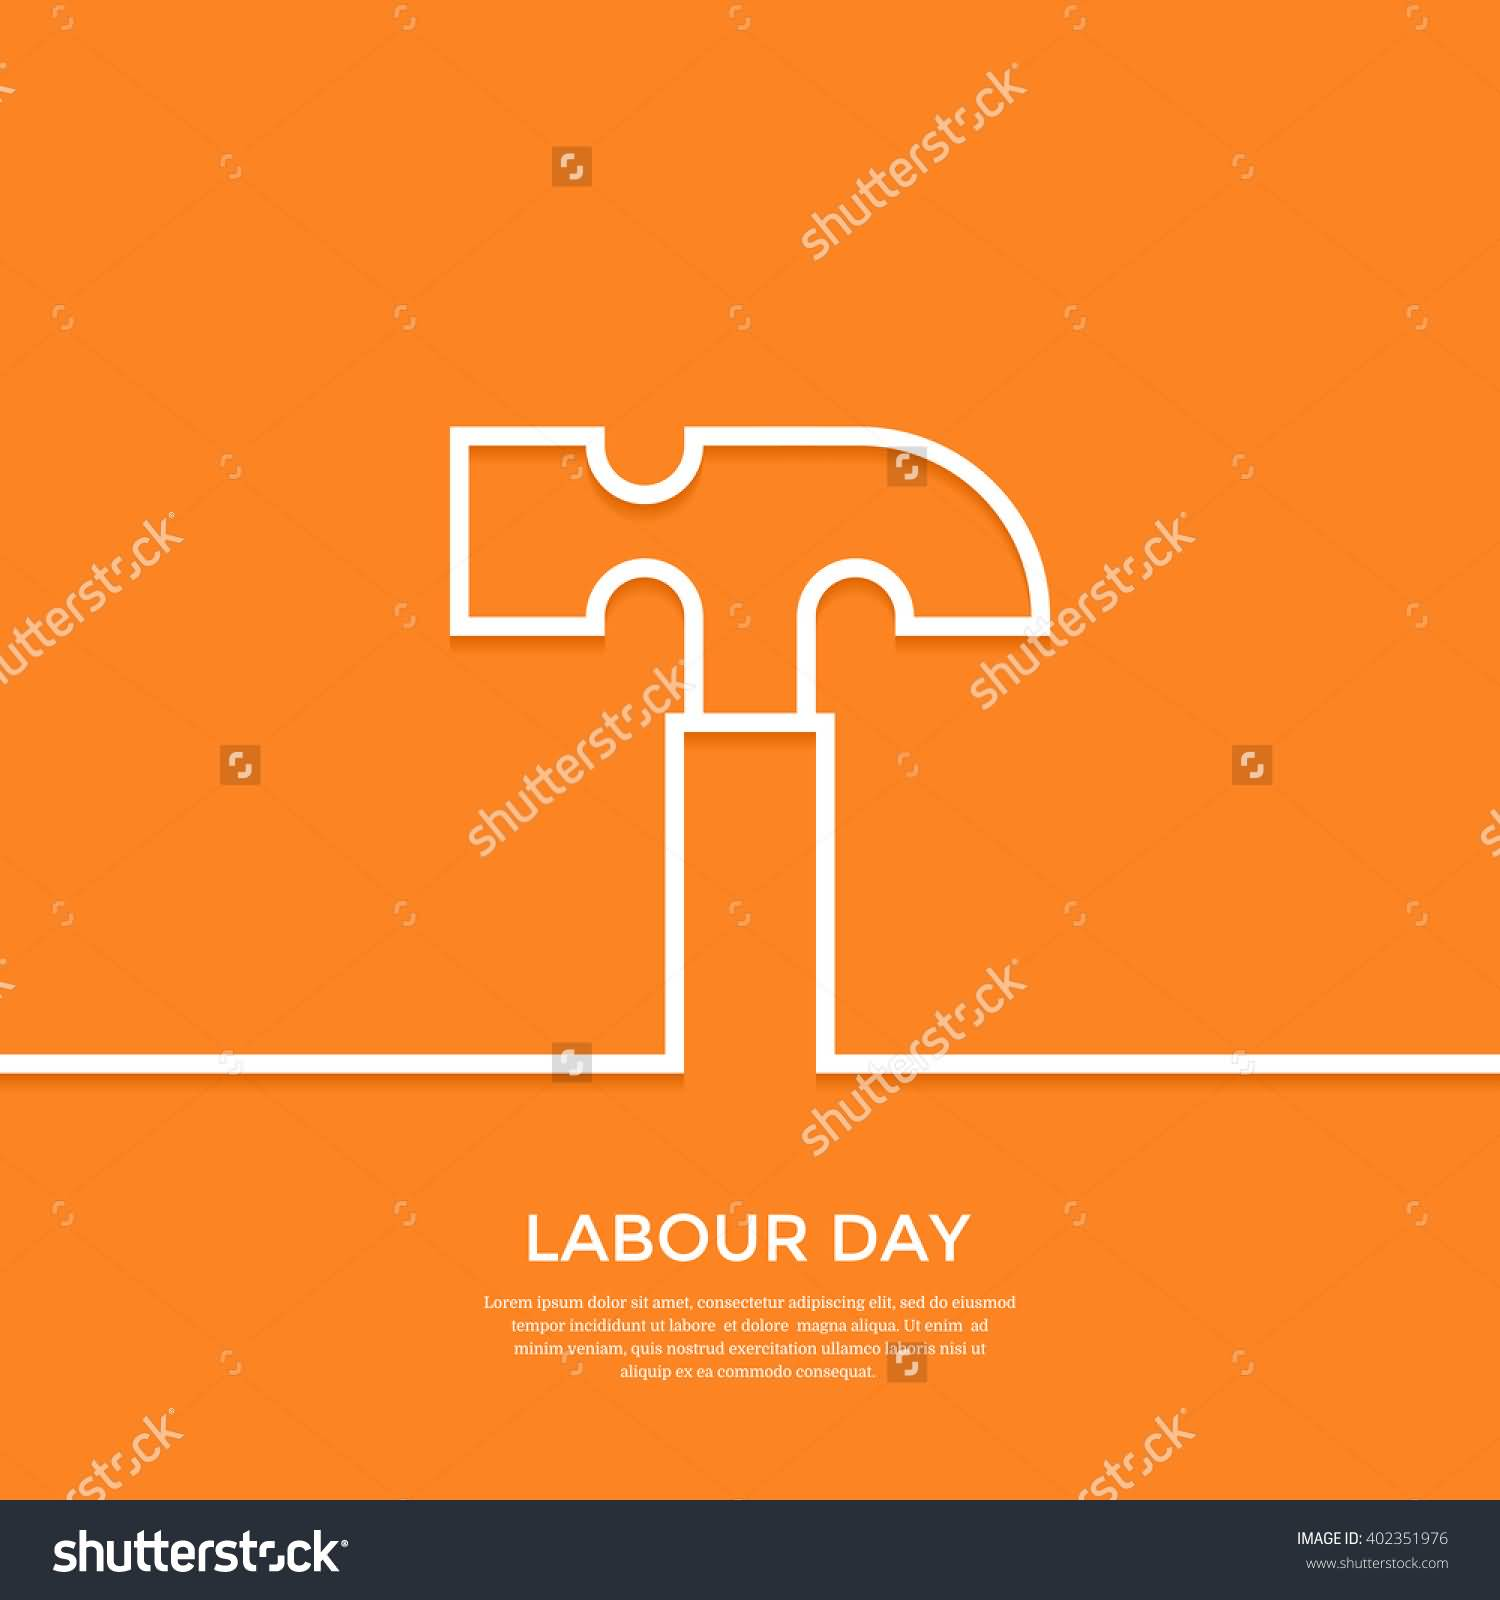 30 international workers day greeting pictures international labour day hammer illustration kristyandbryce Image collections